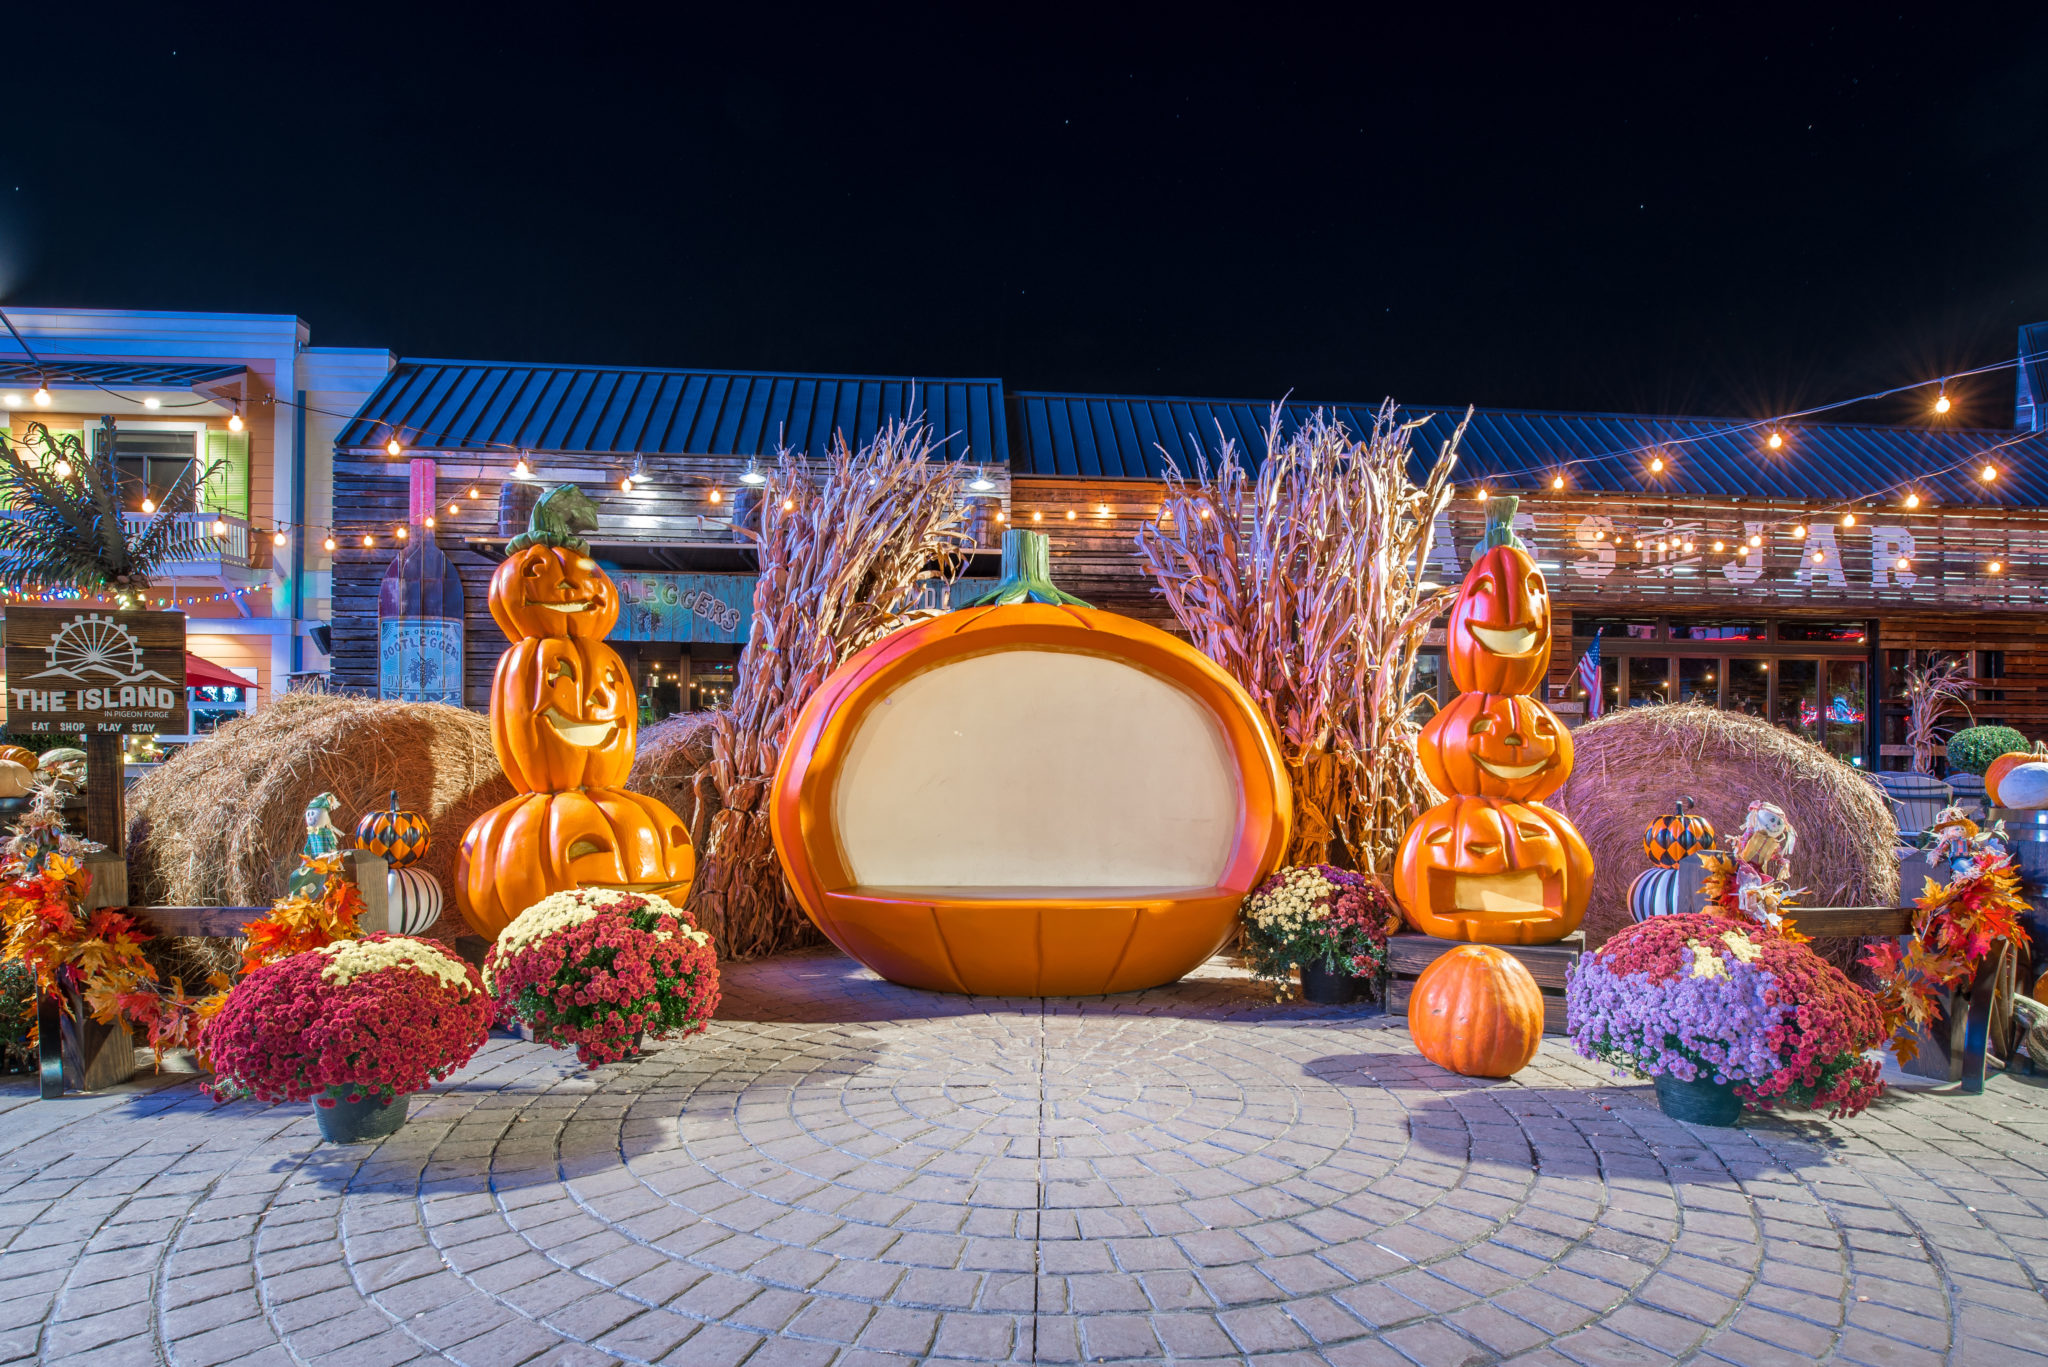 Large pumpkins and fall decor for taking pictures at The Island